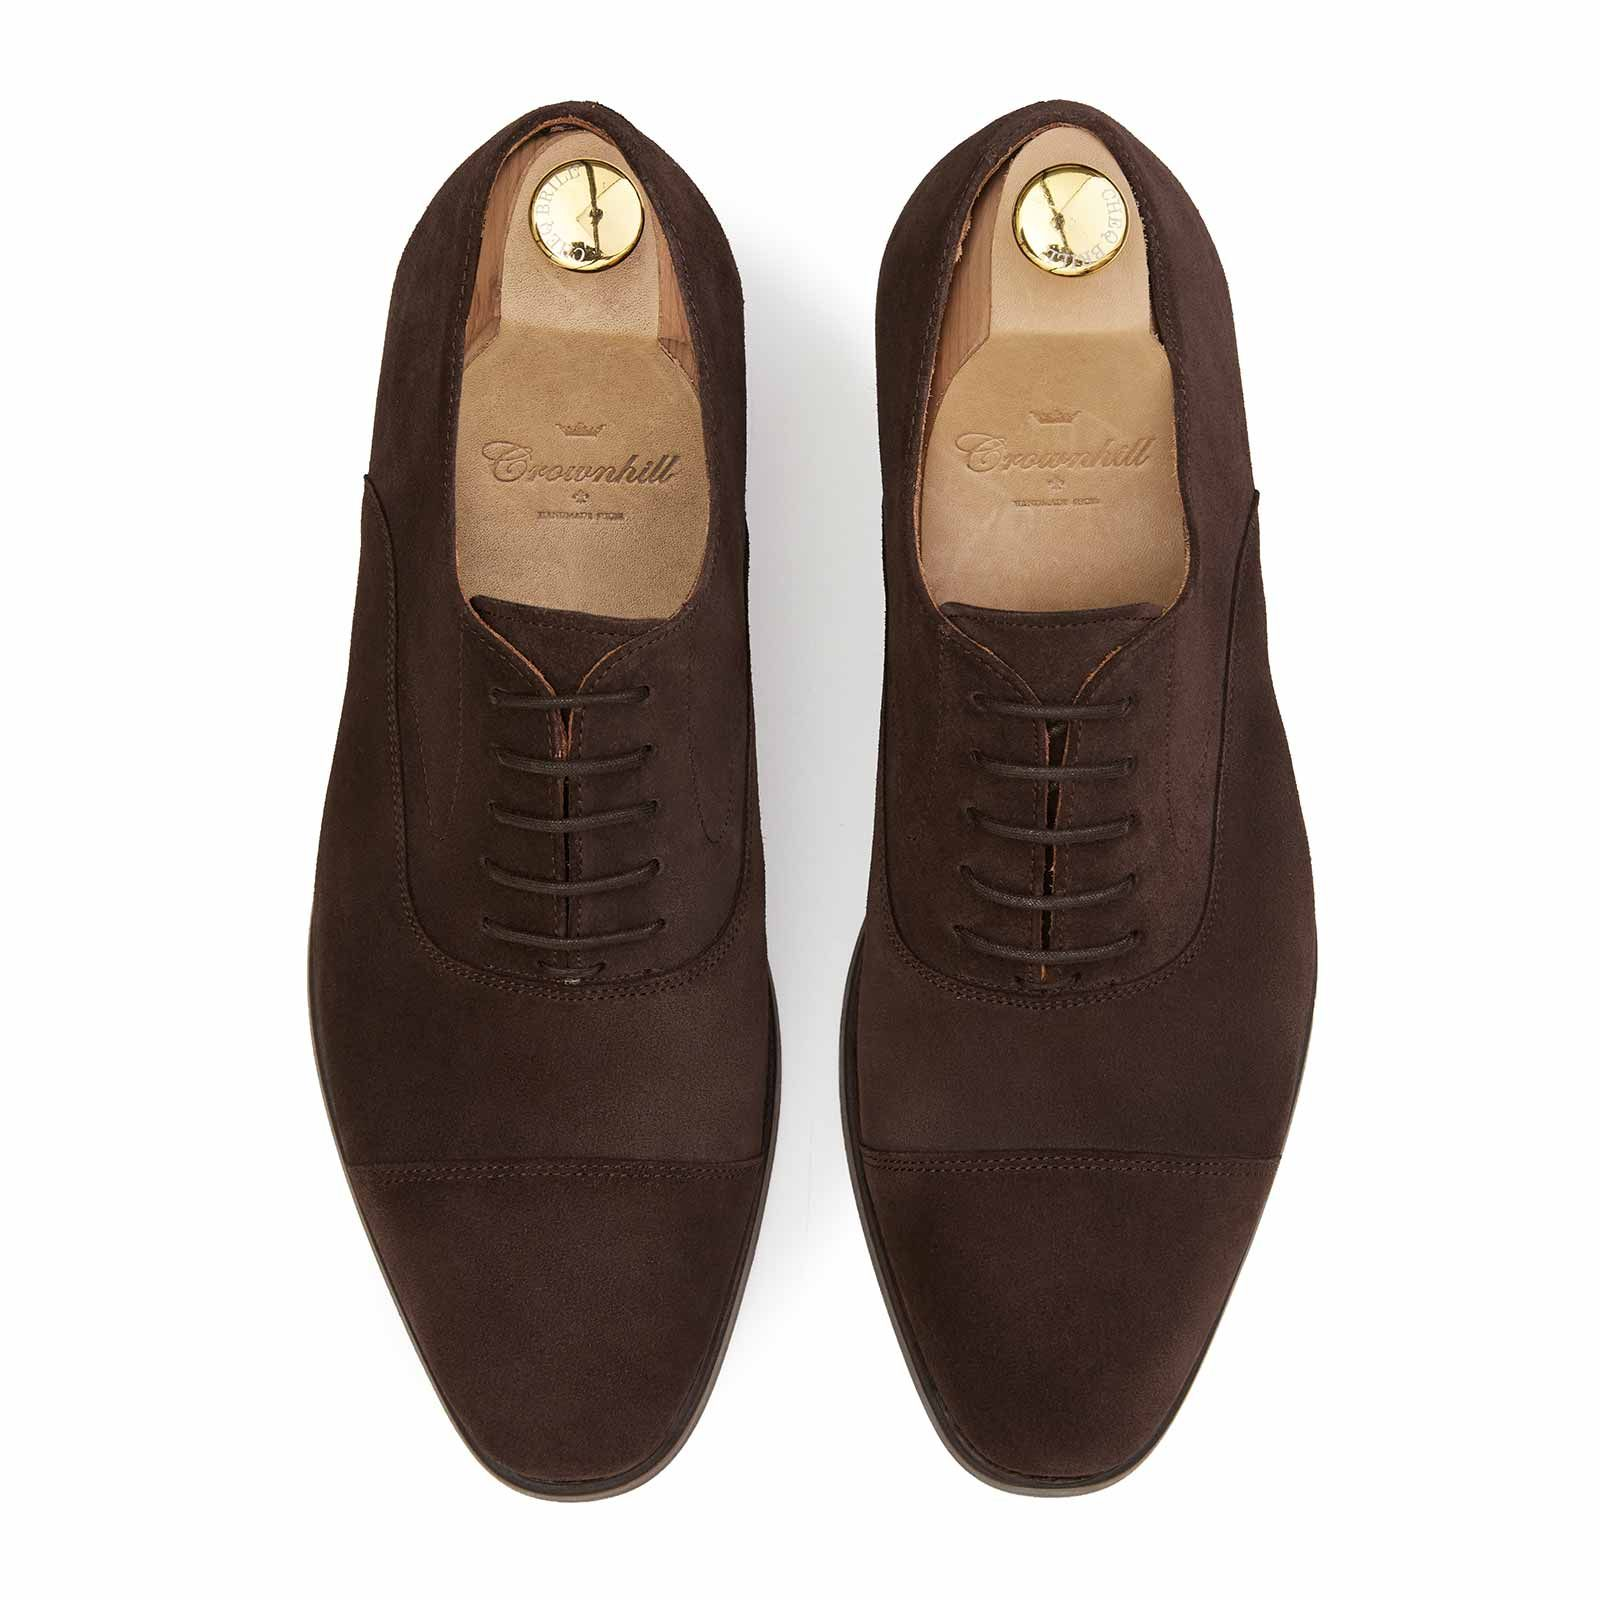 picked up casual shoes exquisite design The Newman